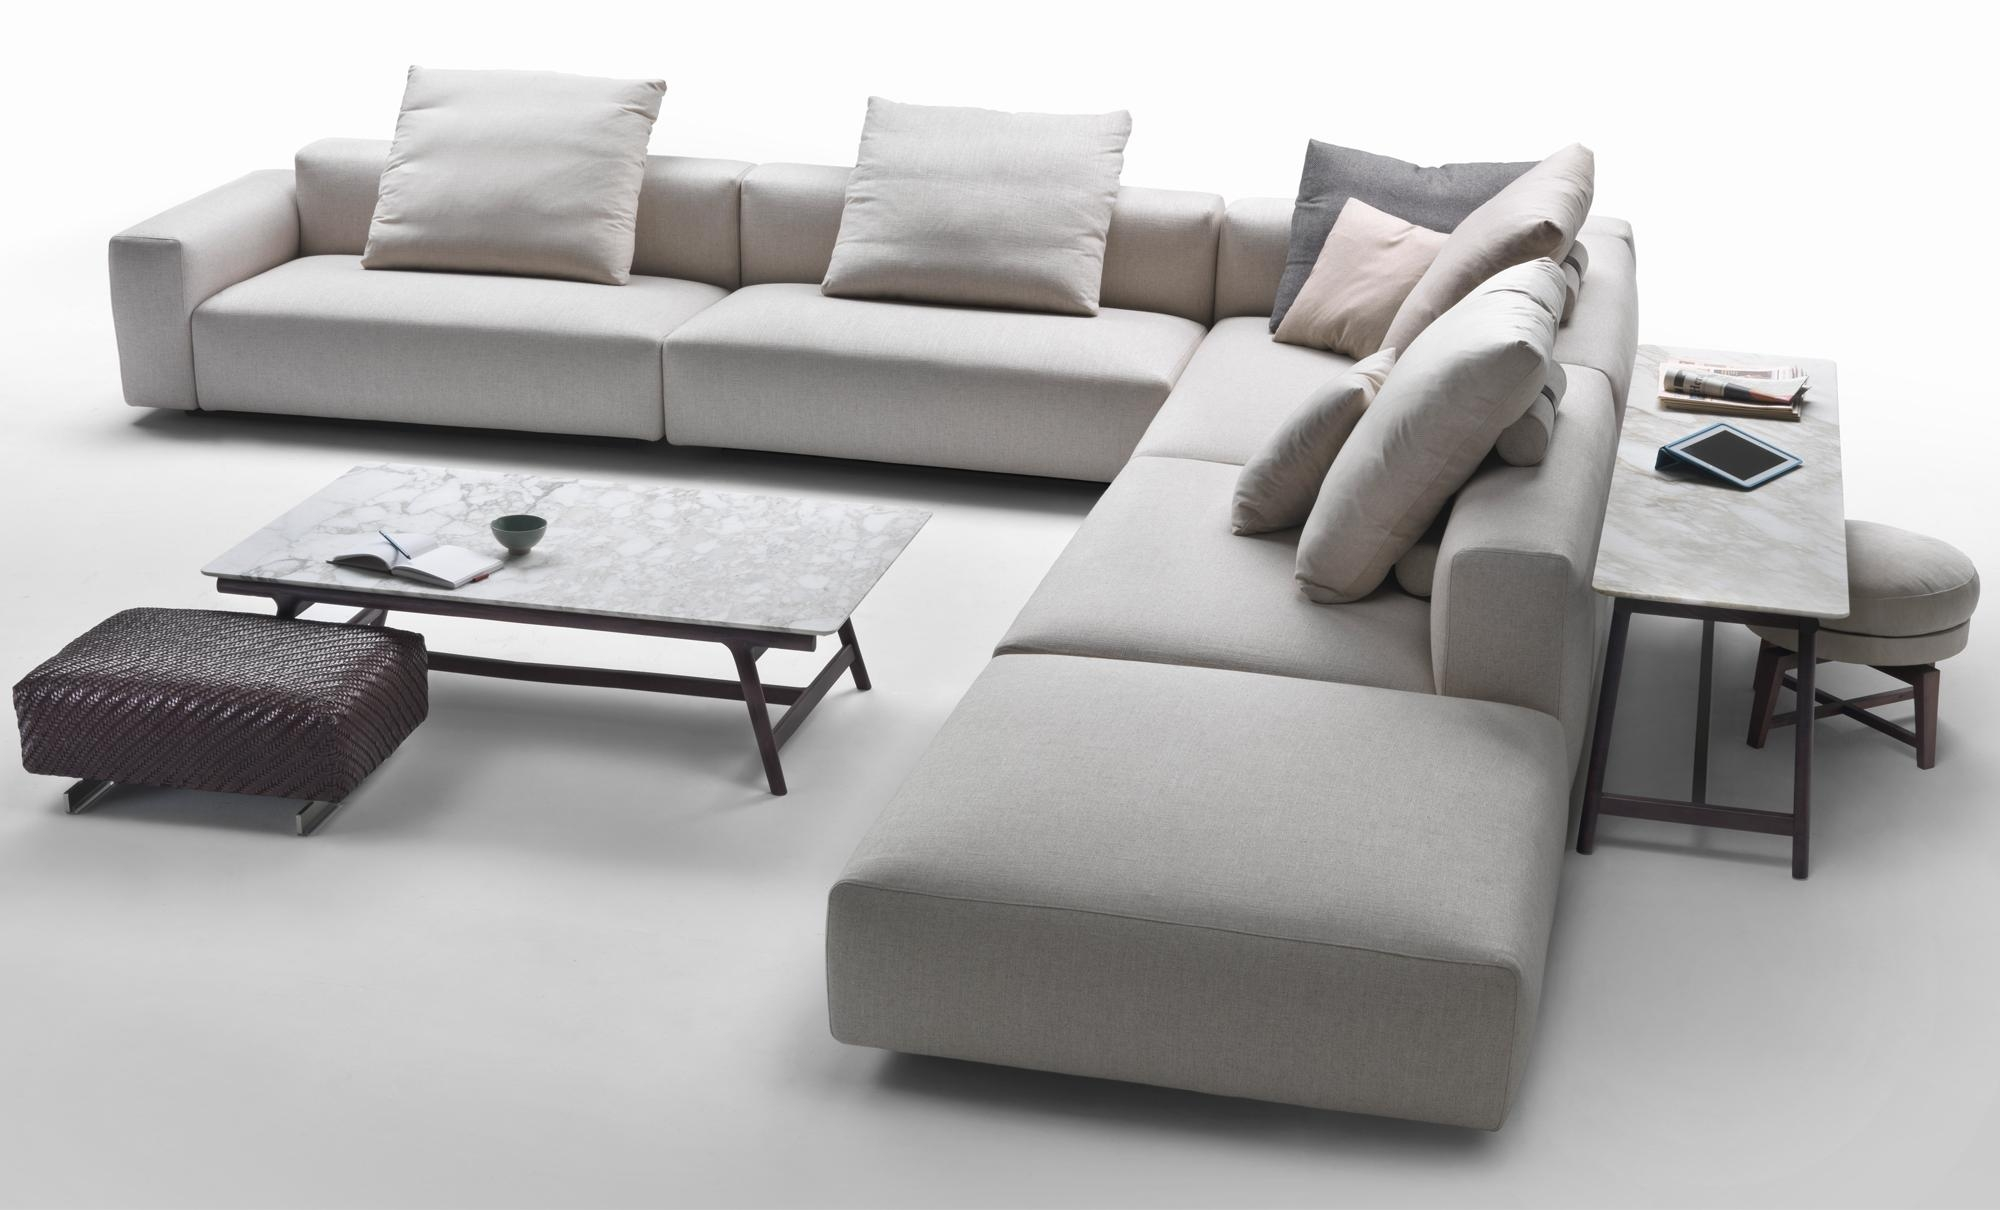 Lario Modular Sofa – Fanuli Furniture Intended For Modular Sofas (Image 5 of 20)